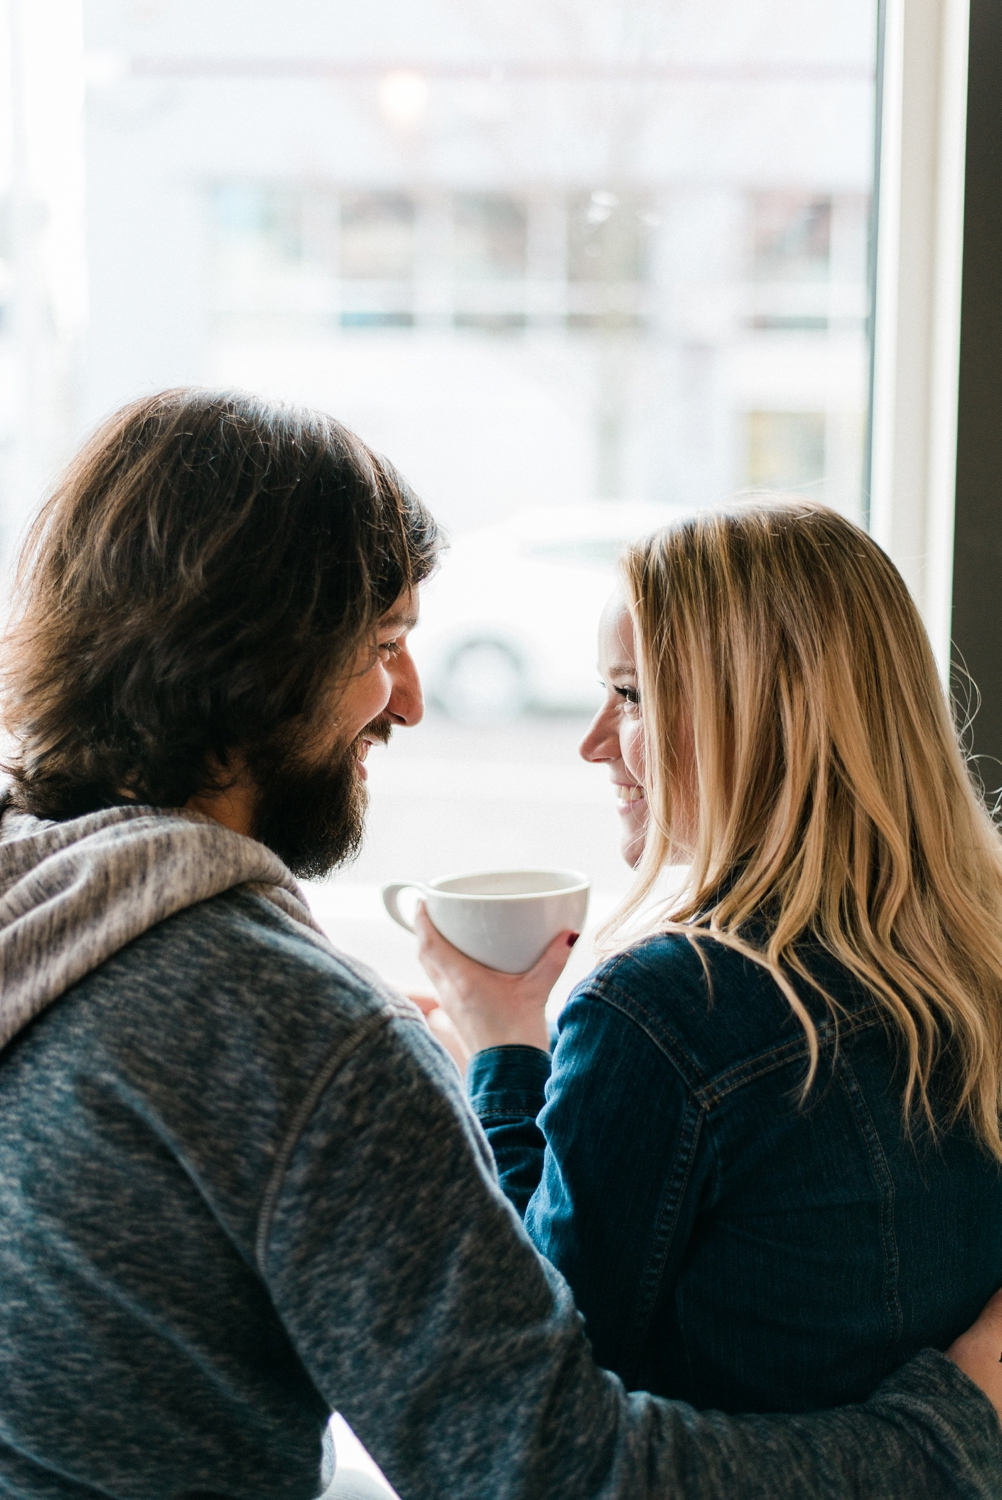 portland-coffee-engagement-session-ristretto-roasters-shelley-marie-photo-020_cr.jpg